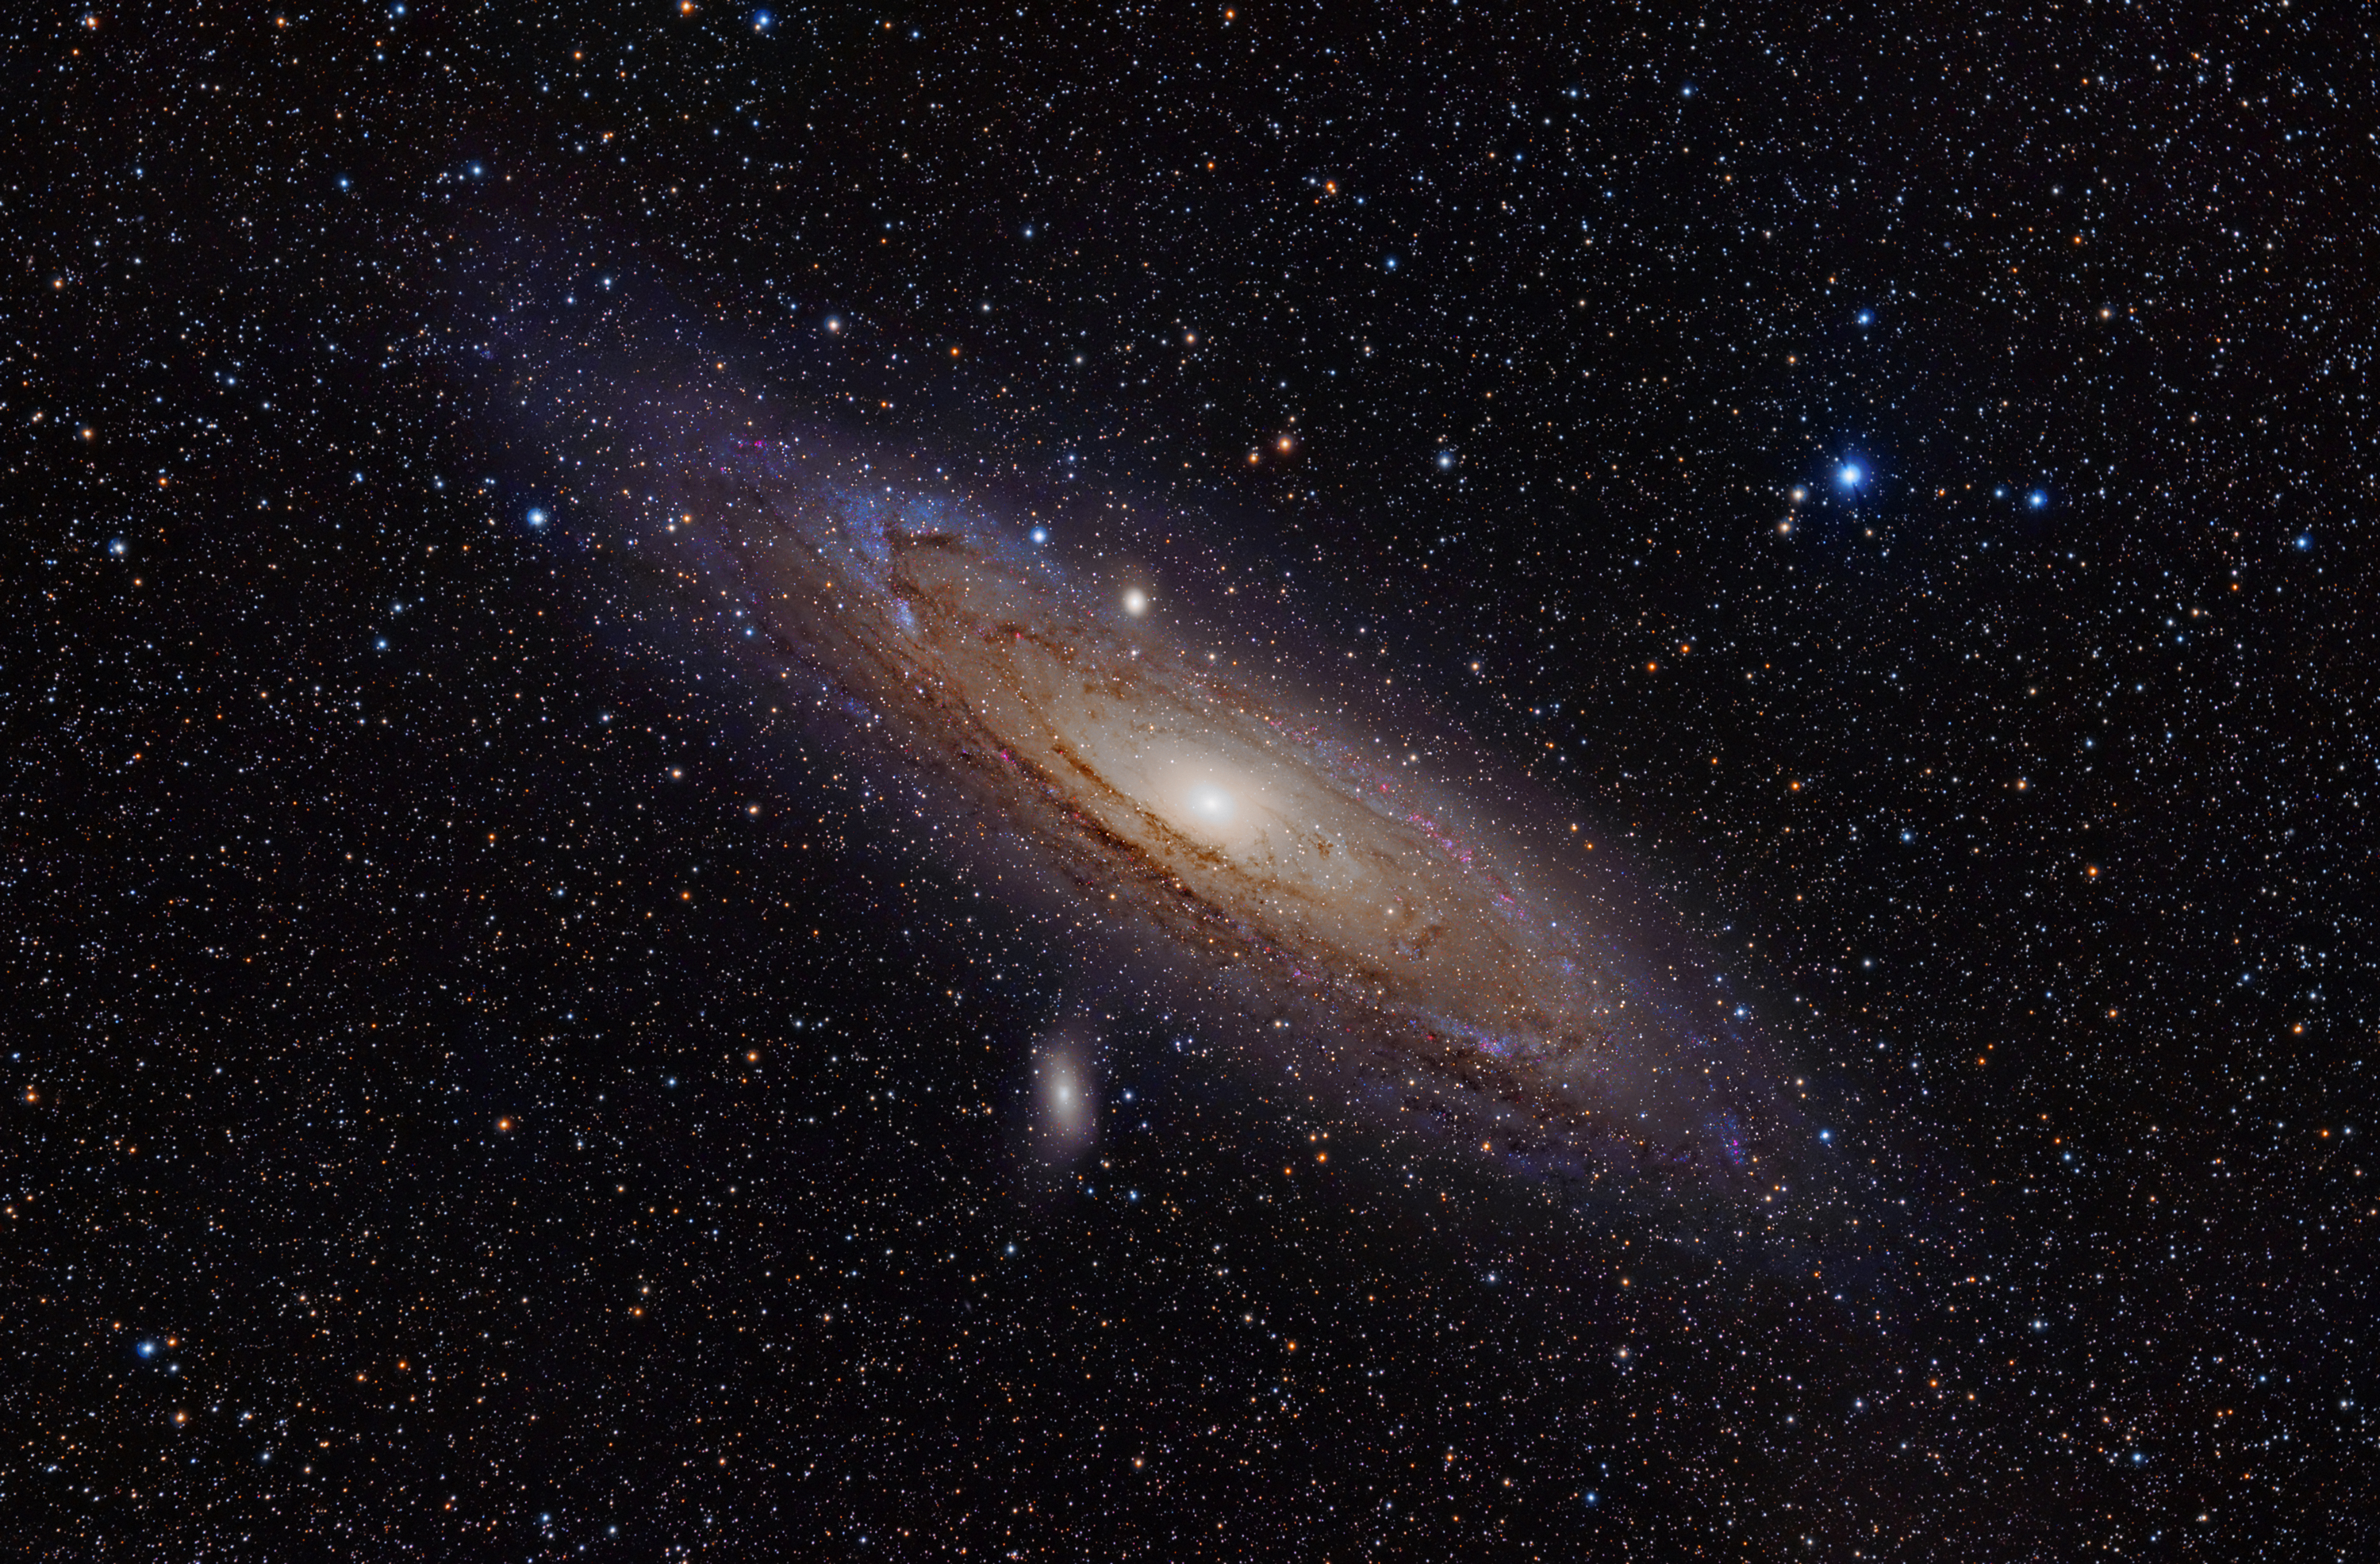 http://upload.wikimedia.org/wikipedia/commons/9/98/Andromeda_Galaxy_%28with_h-alpha%29.jpg